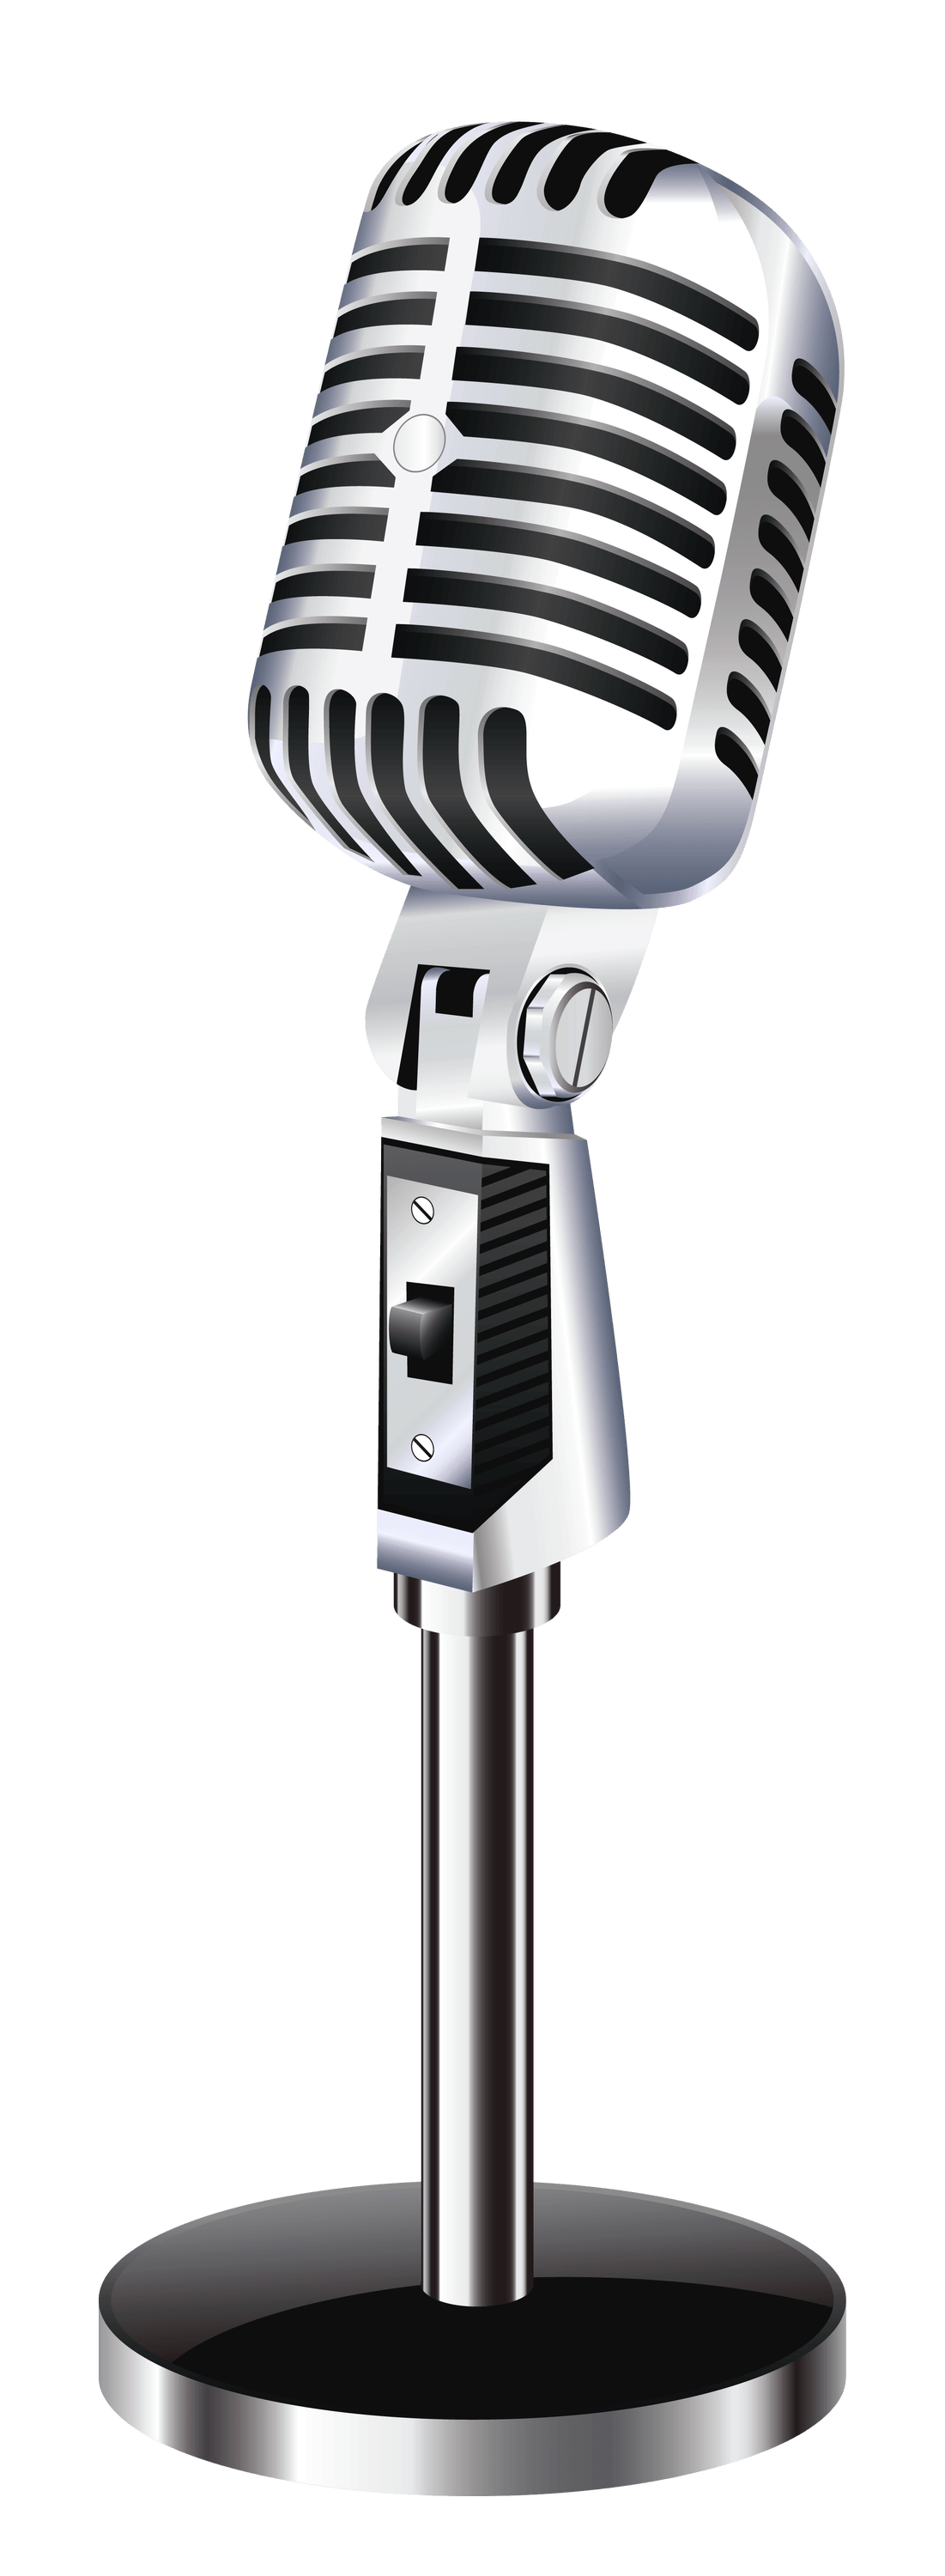 Microphone clipart vintage microphone pencil and in color